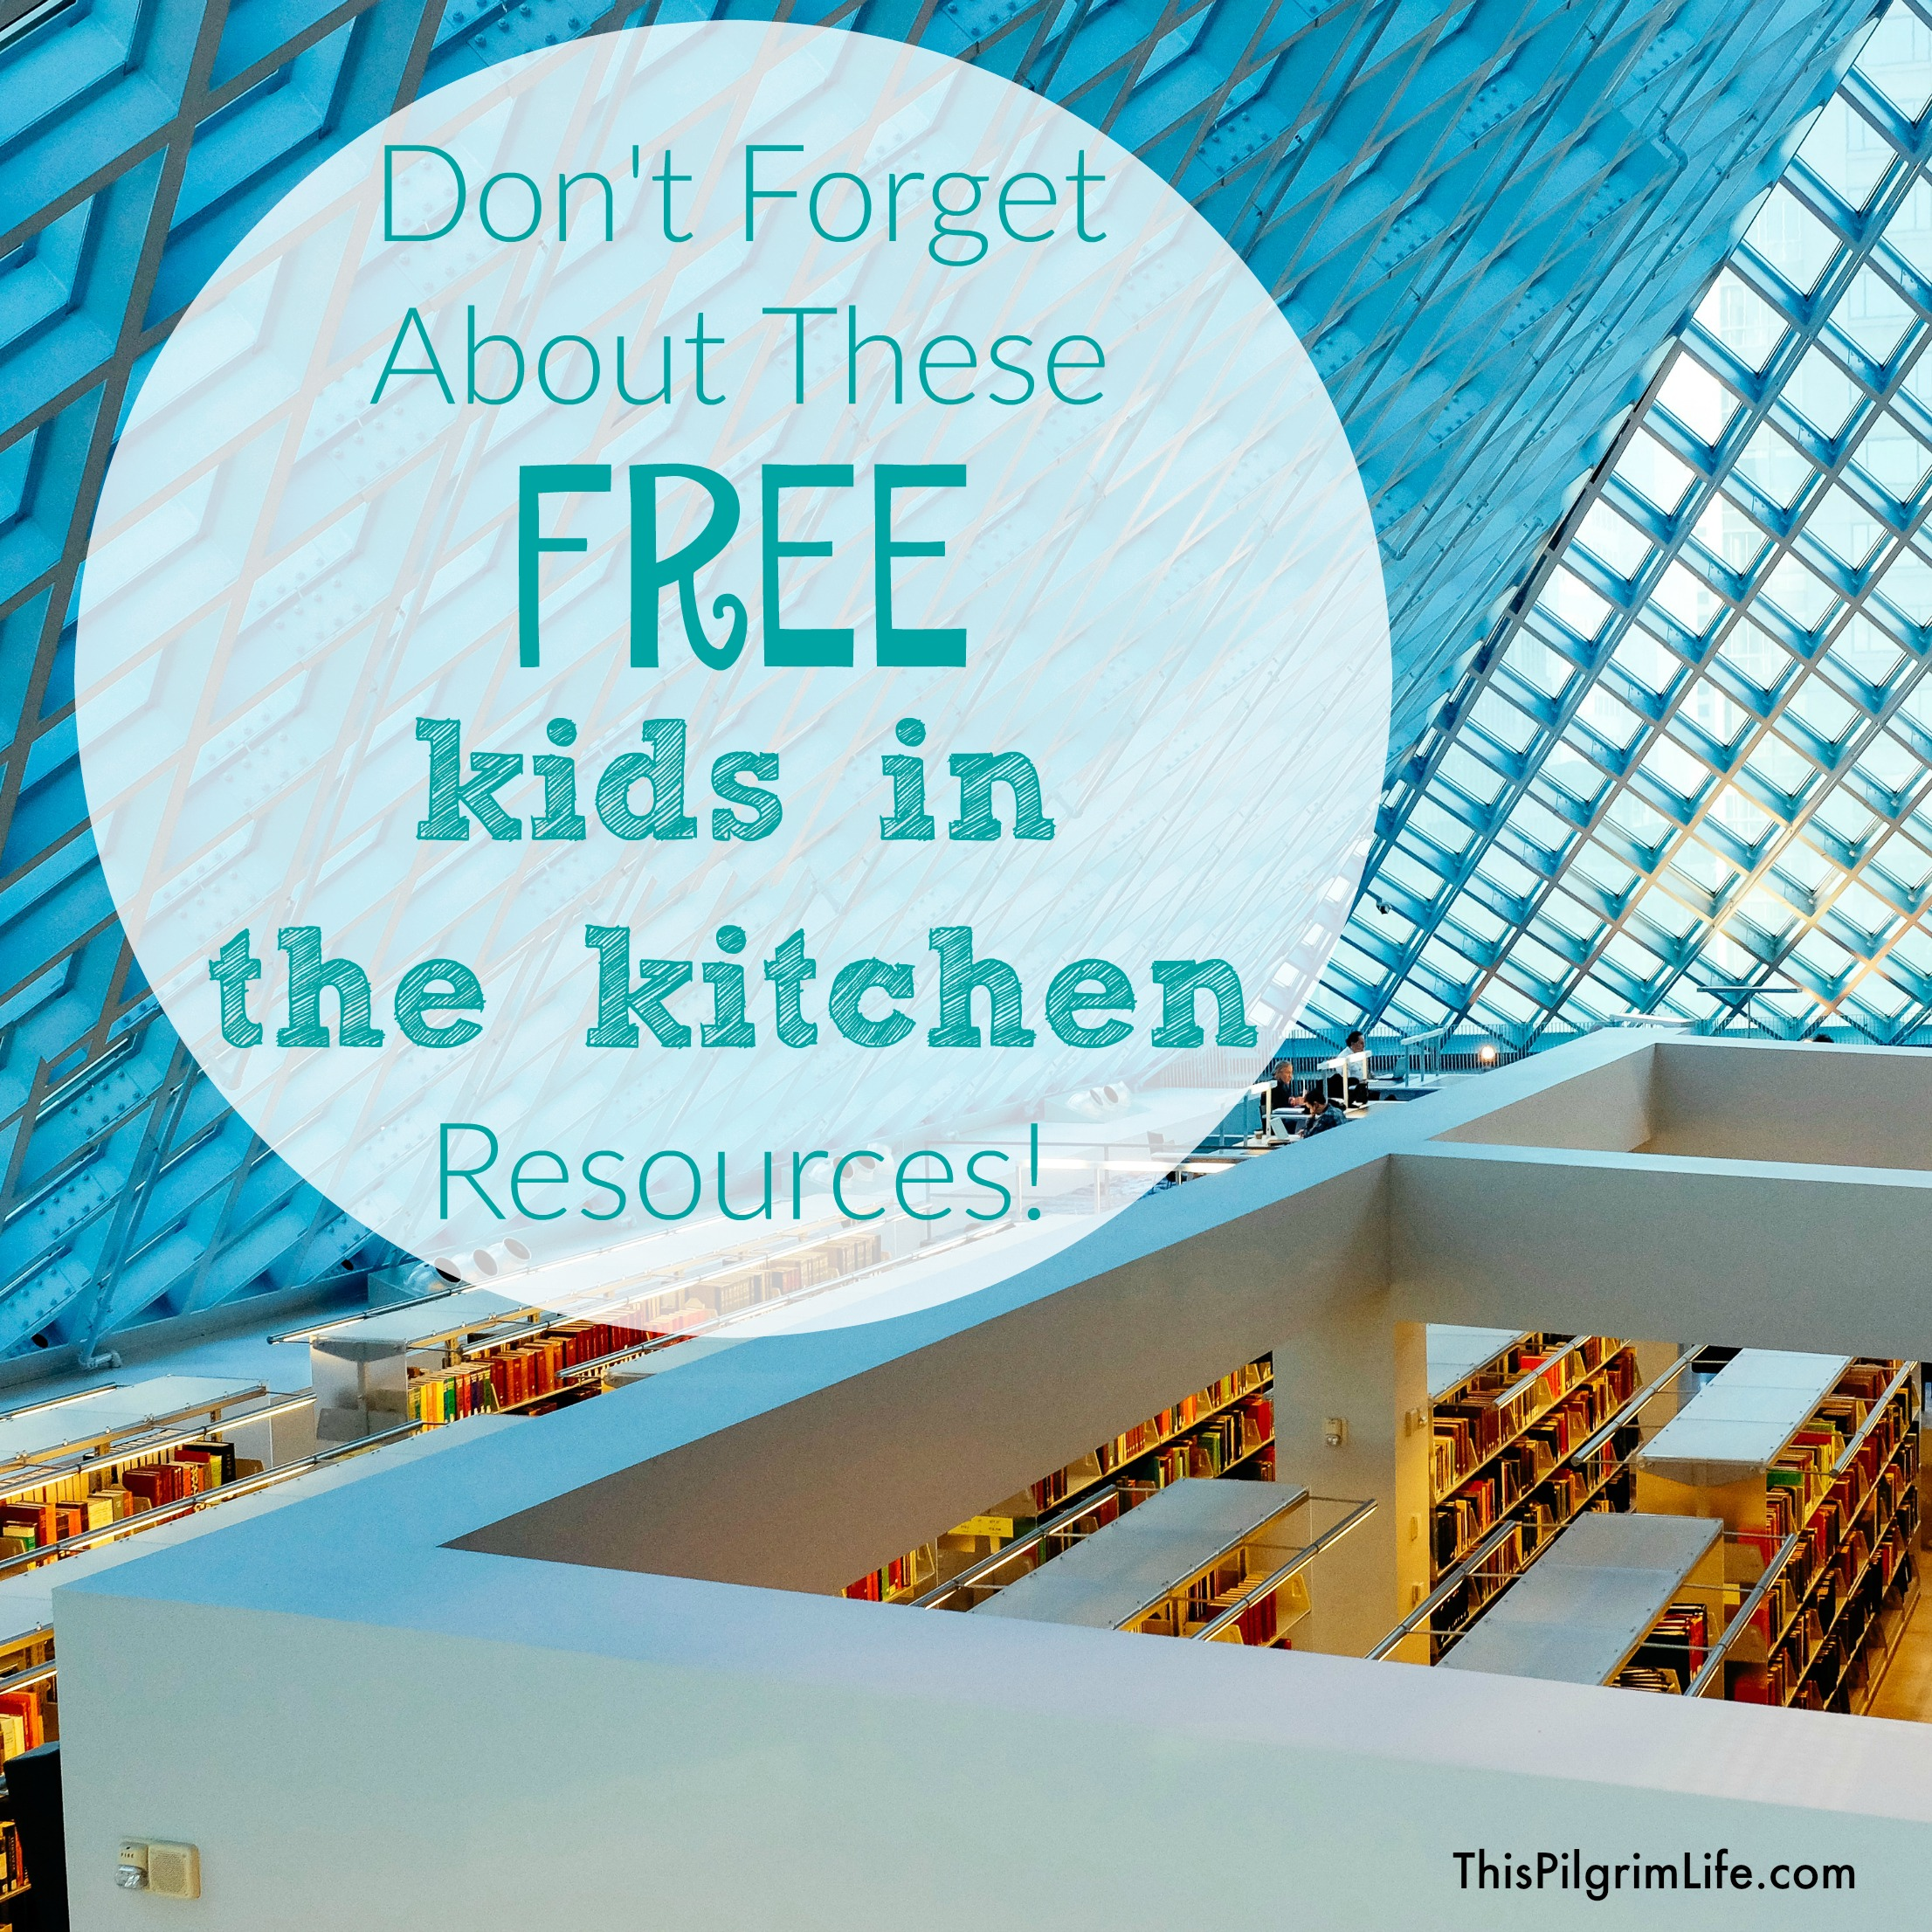 Don't Forget About These Free Kids in the Kitchen Resources!